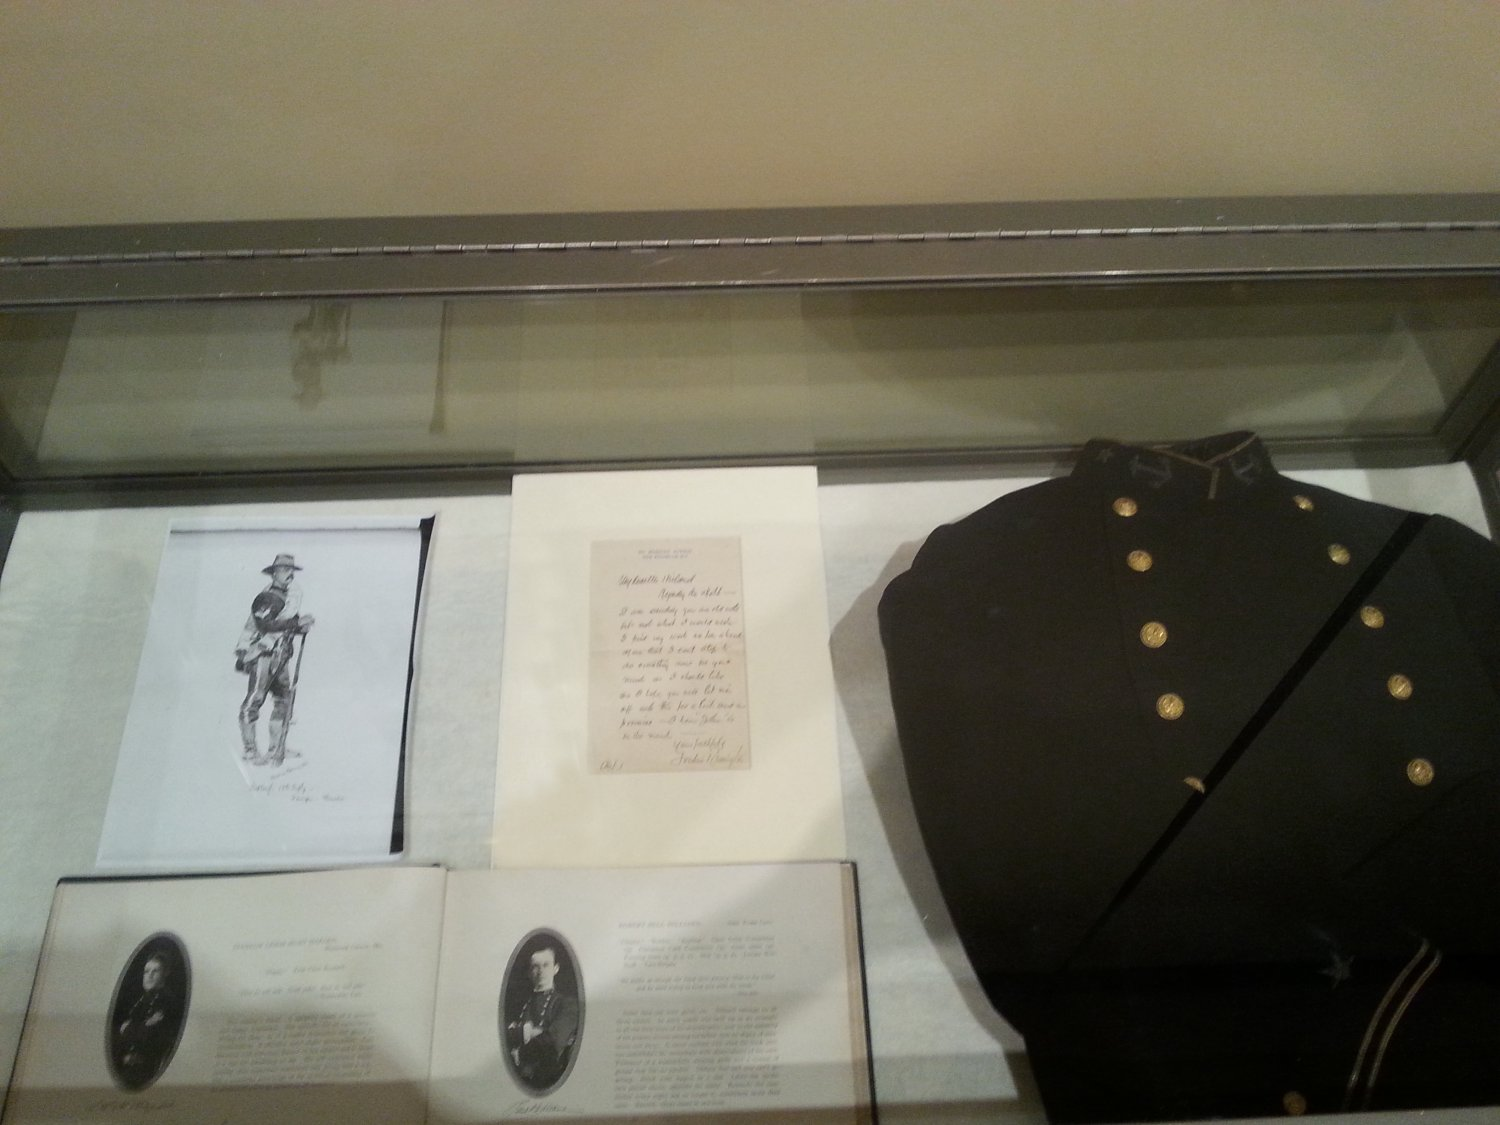 mini exhibit of Remington military art